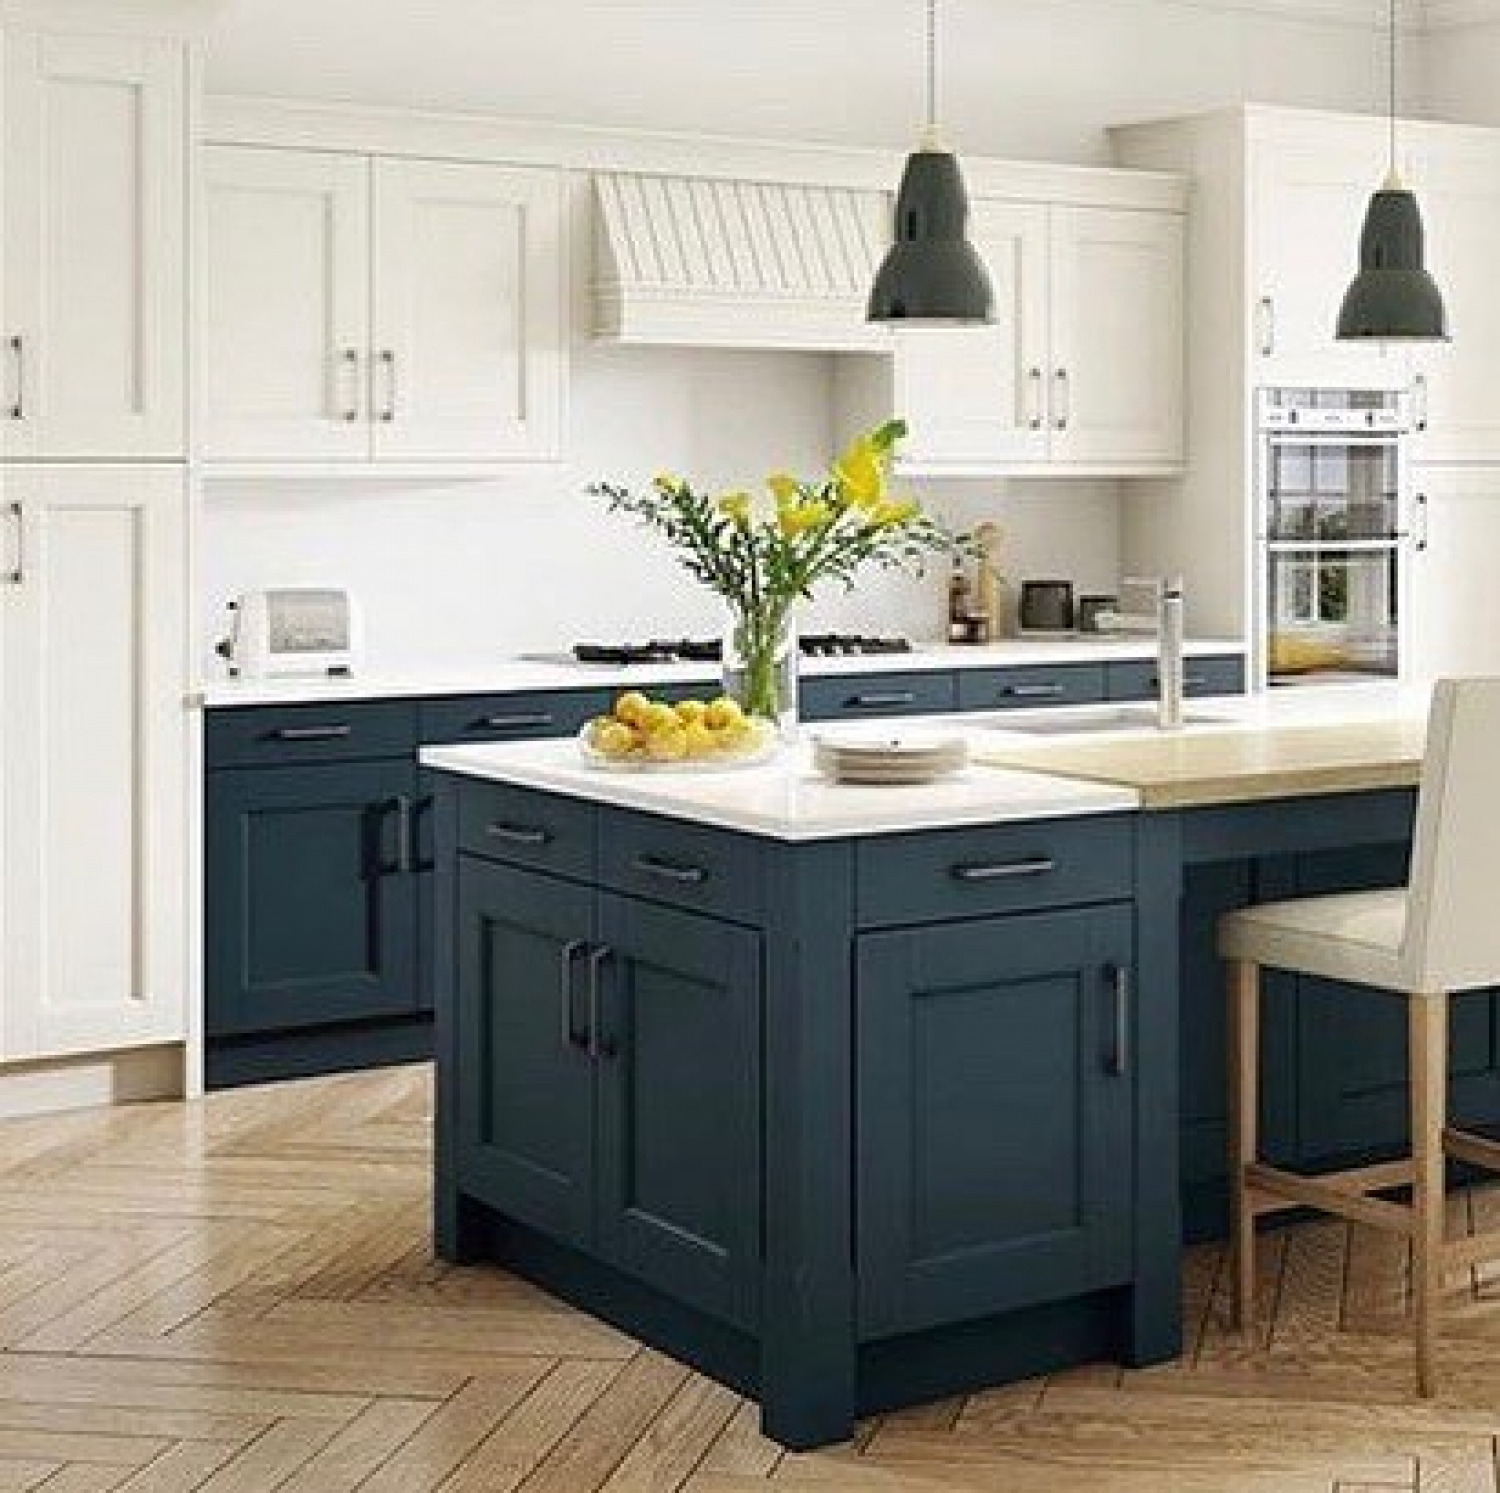 White Kitchen Cabinet Ideas Two Tone Cabinets With Blue Island